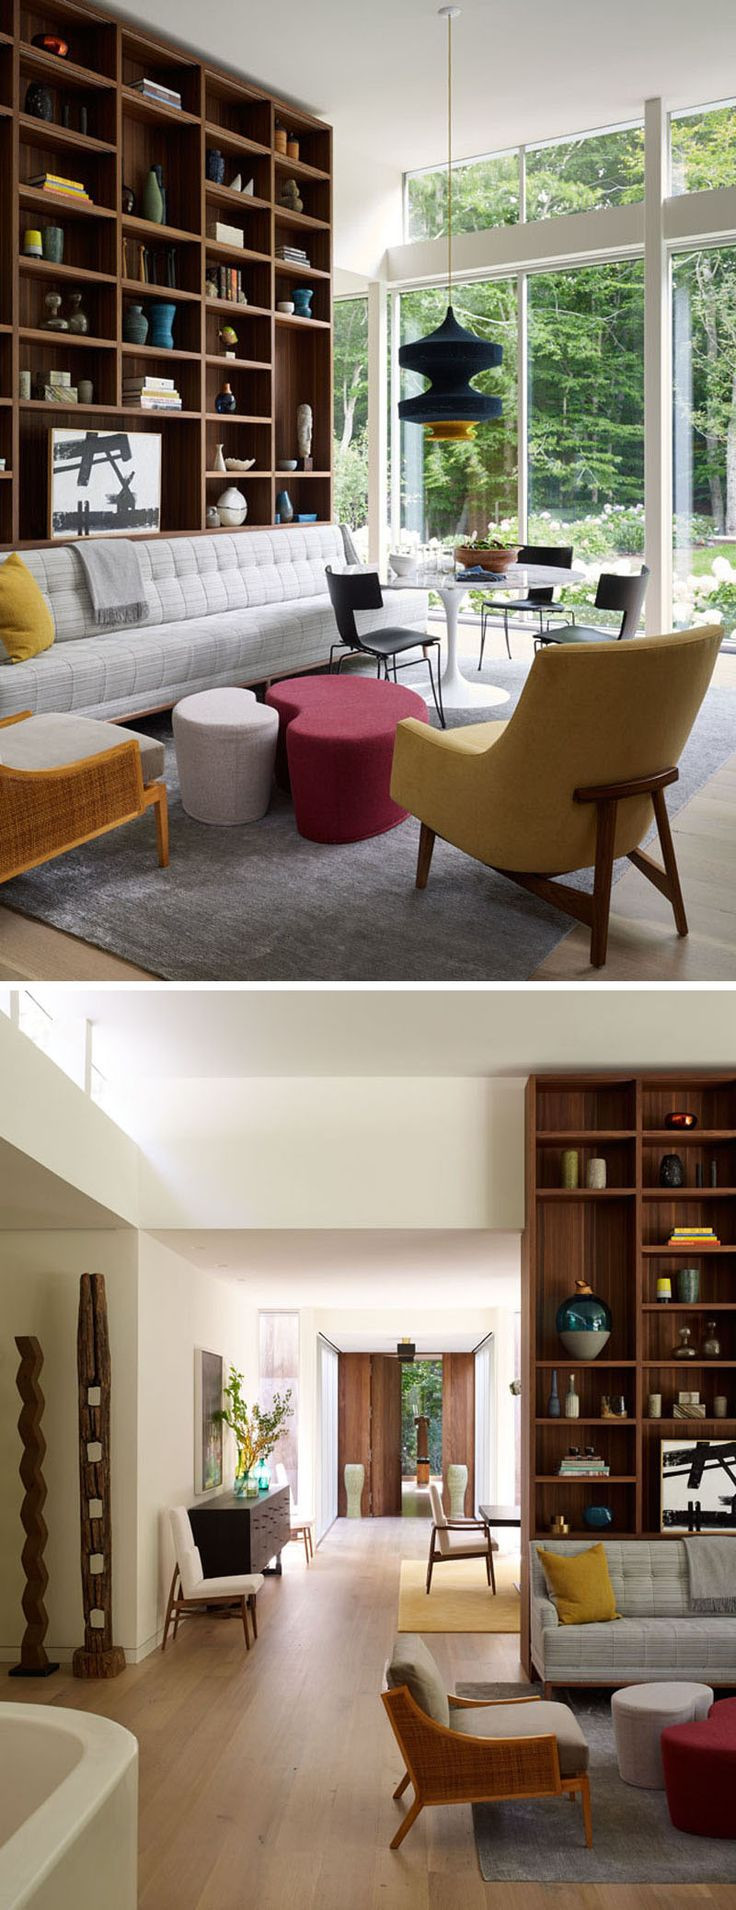 hardwood flooring mallet of 218 best arqui vaos images on pinterest windows architectural with in this living and casual design room large windows make the space bright and a floor to ceiling wooden bookshelf makes sure theres enough room for